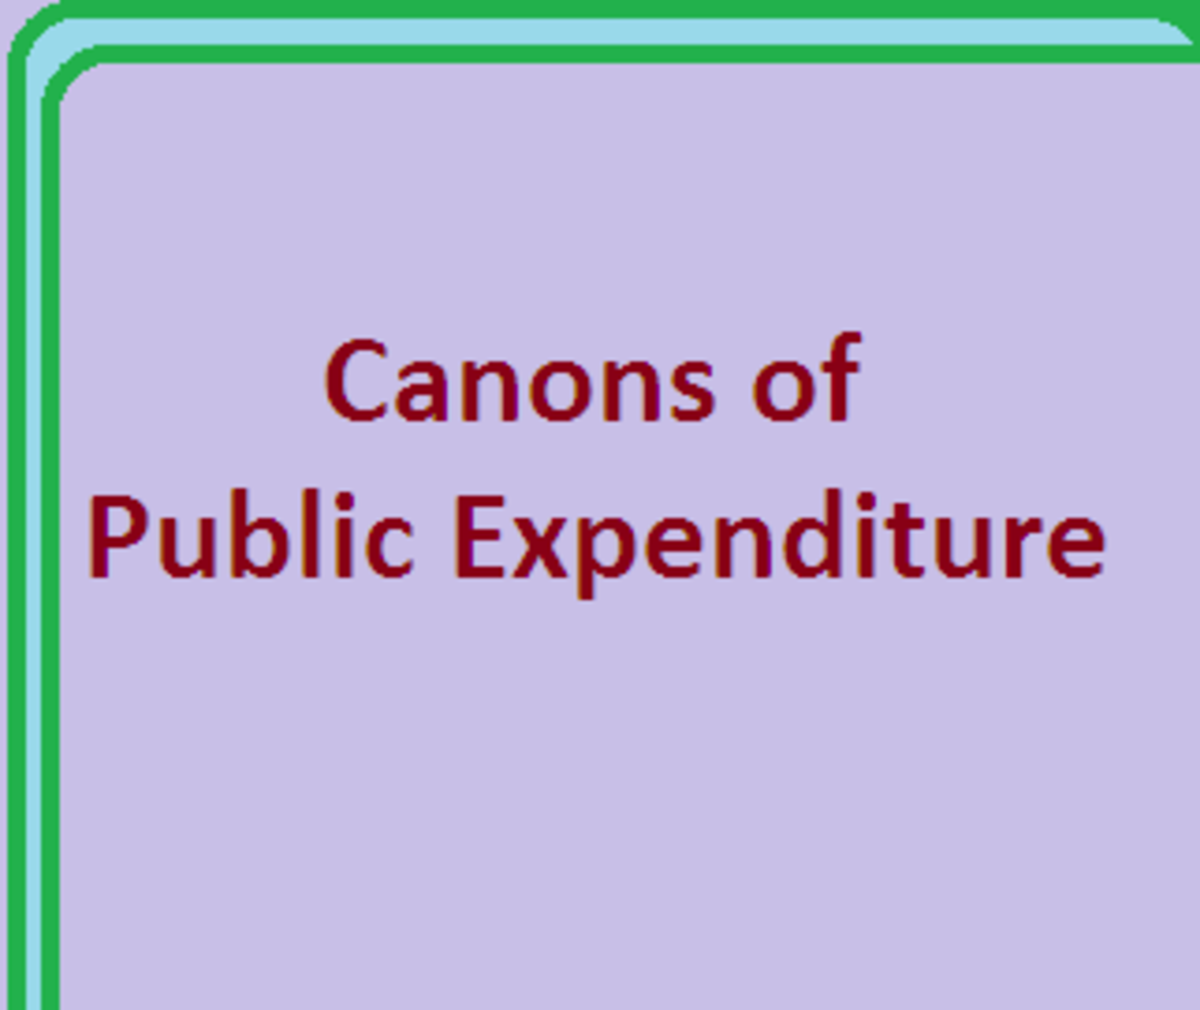 Principles or Canons of Public Expenditure